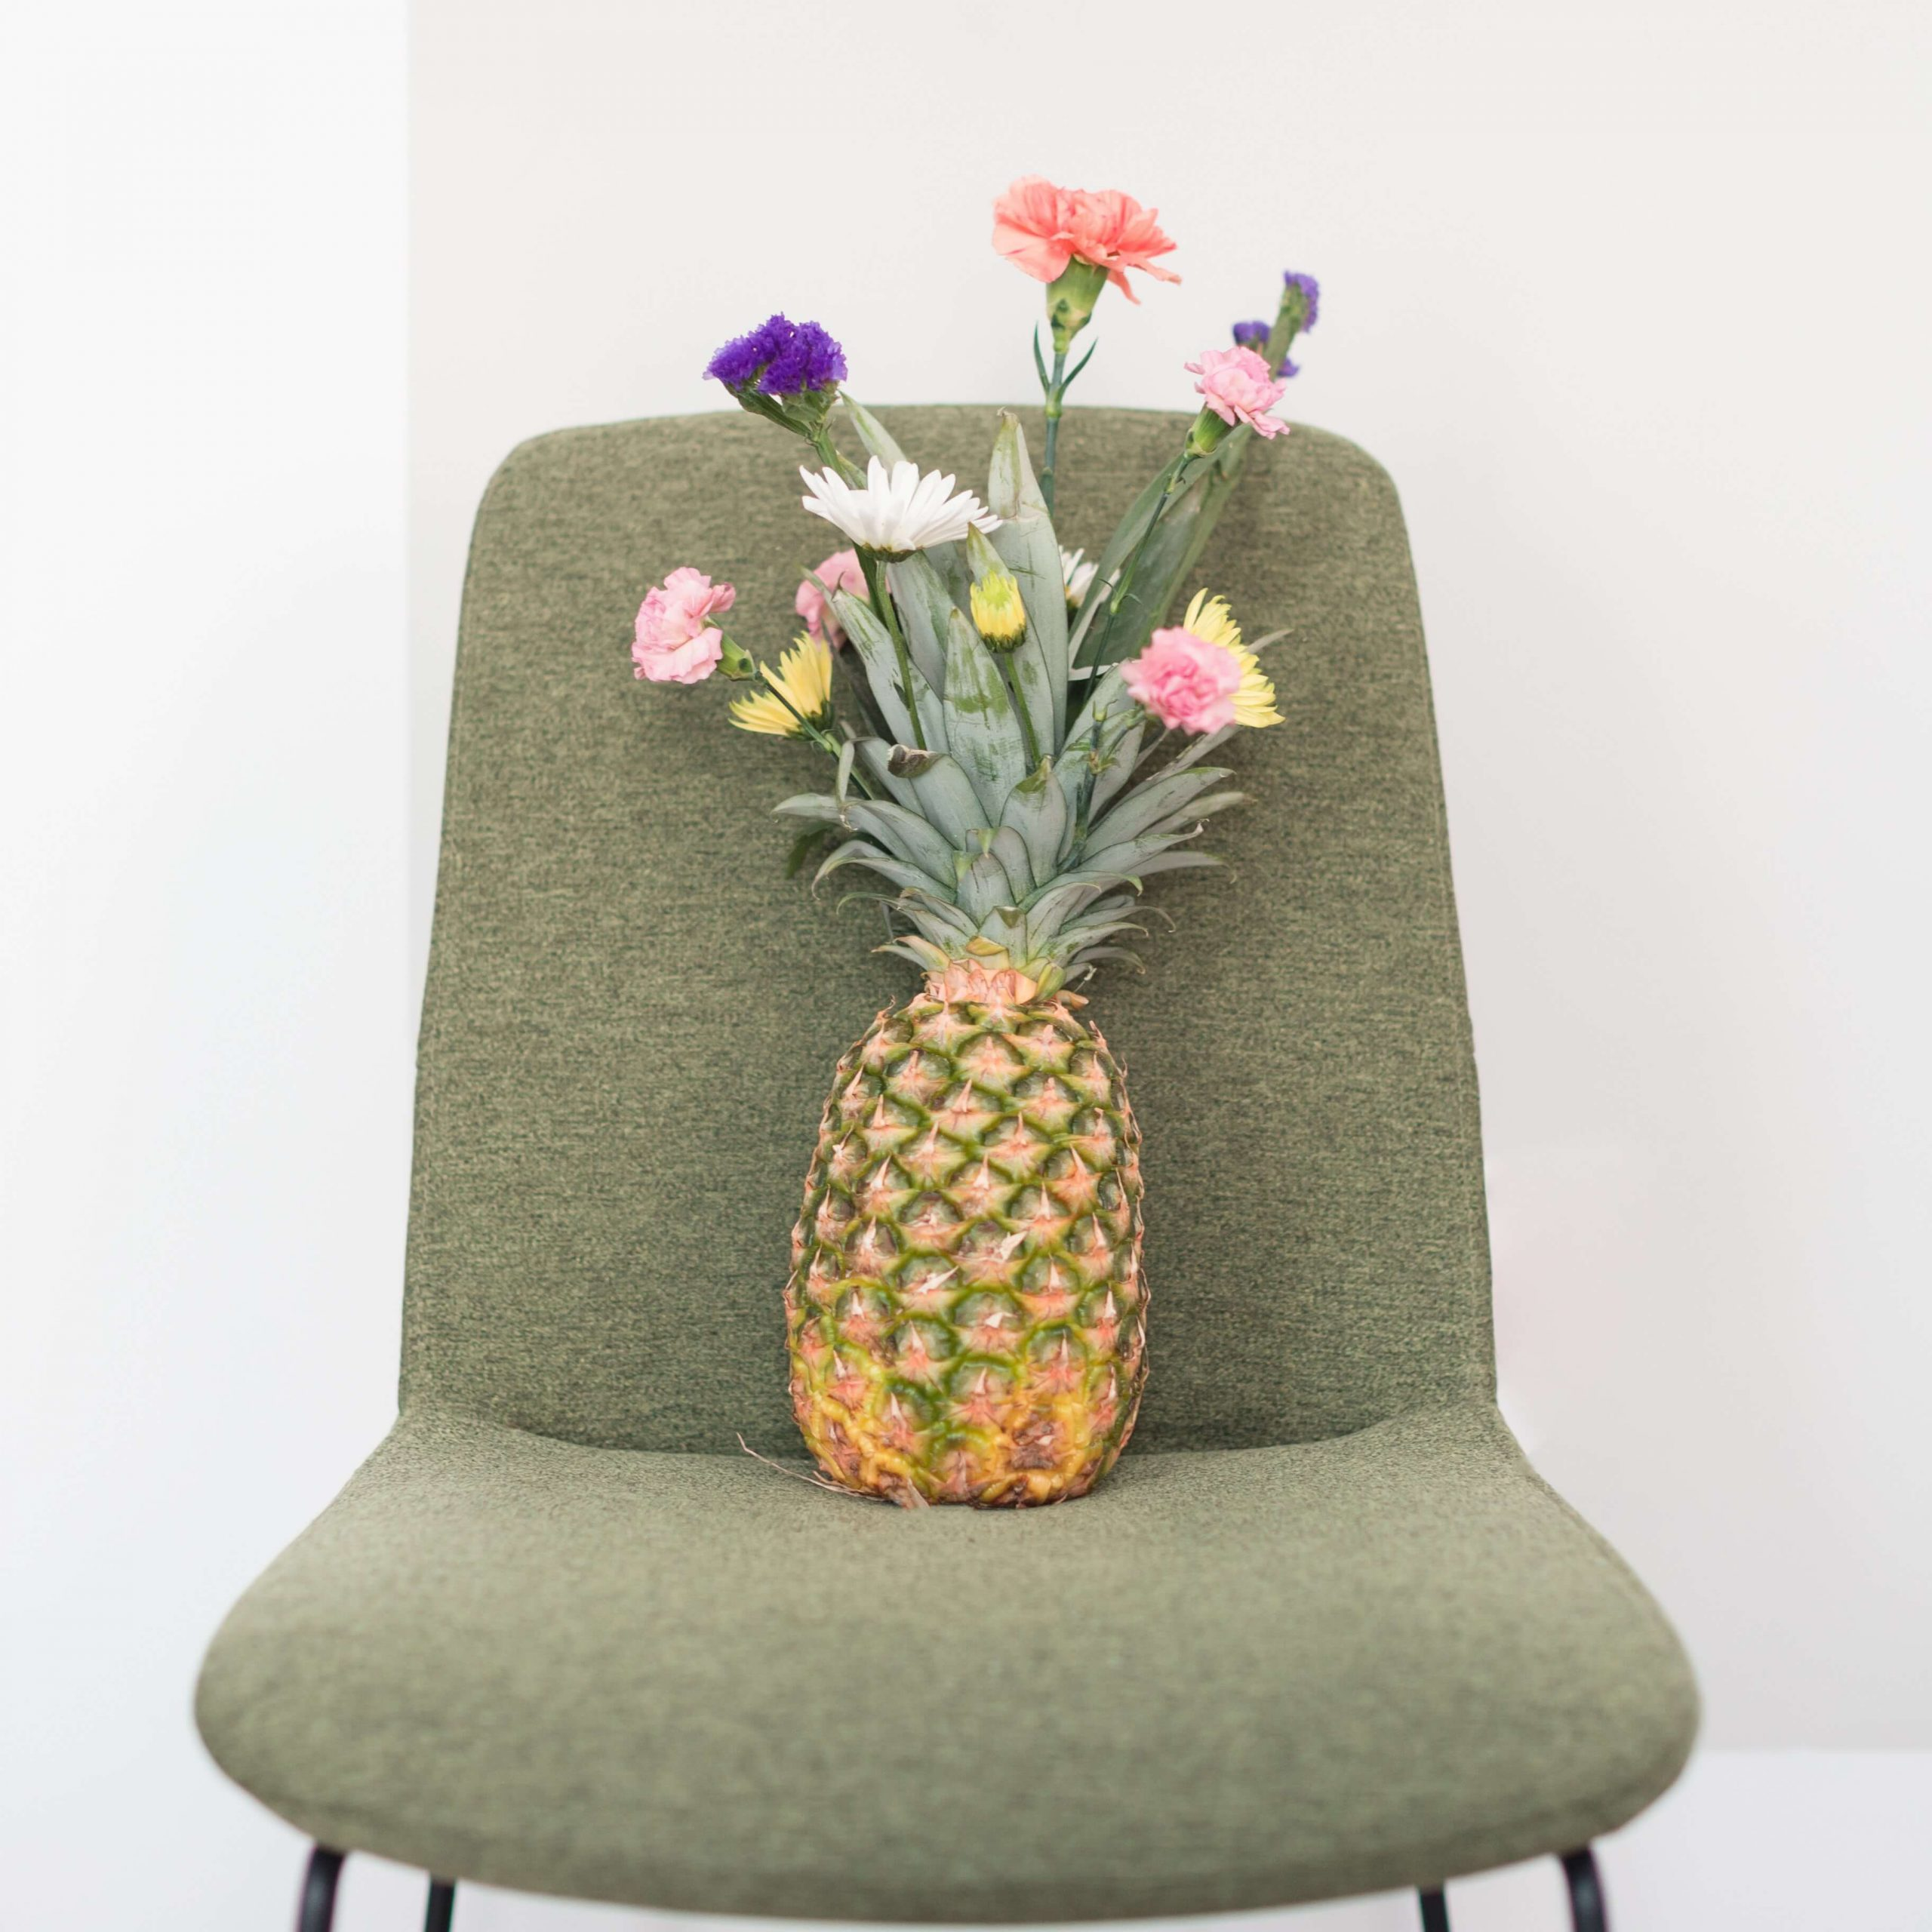 Pineapple with flowers